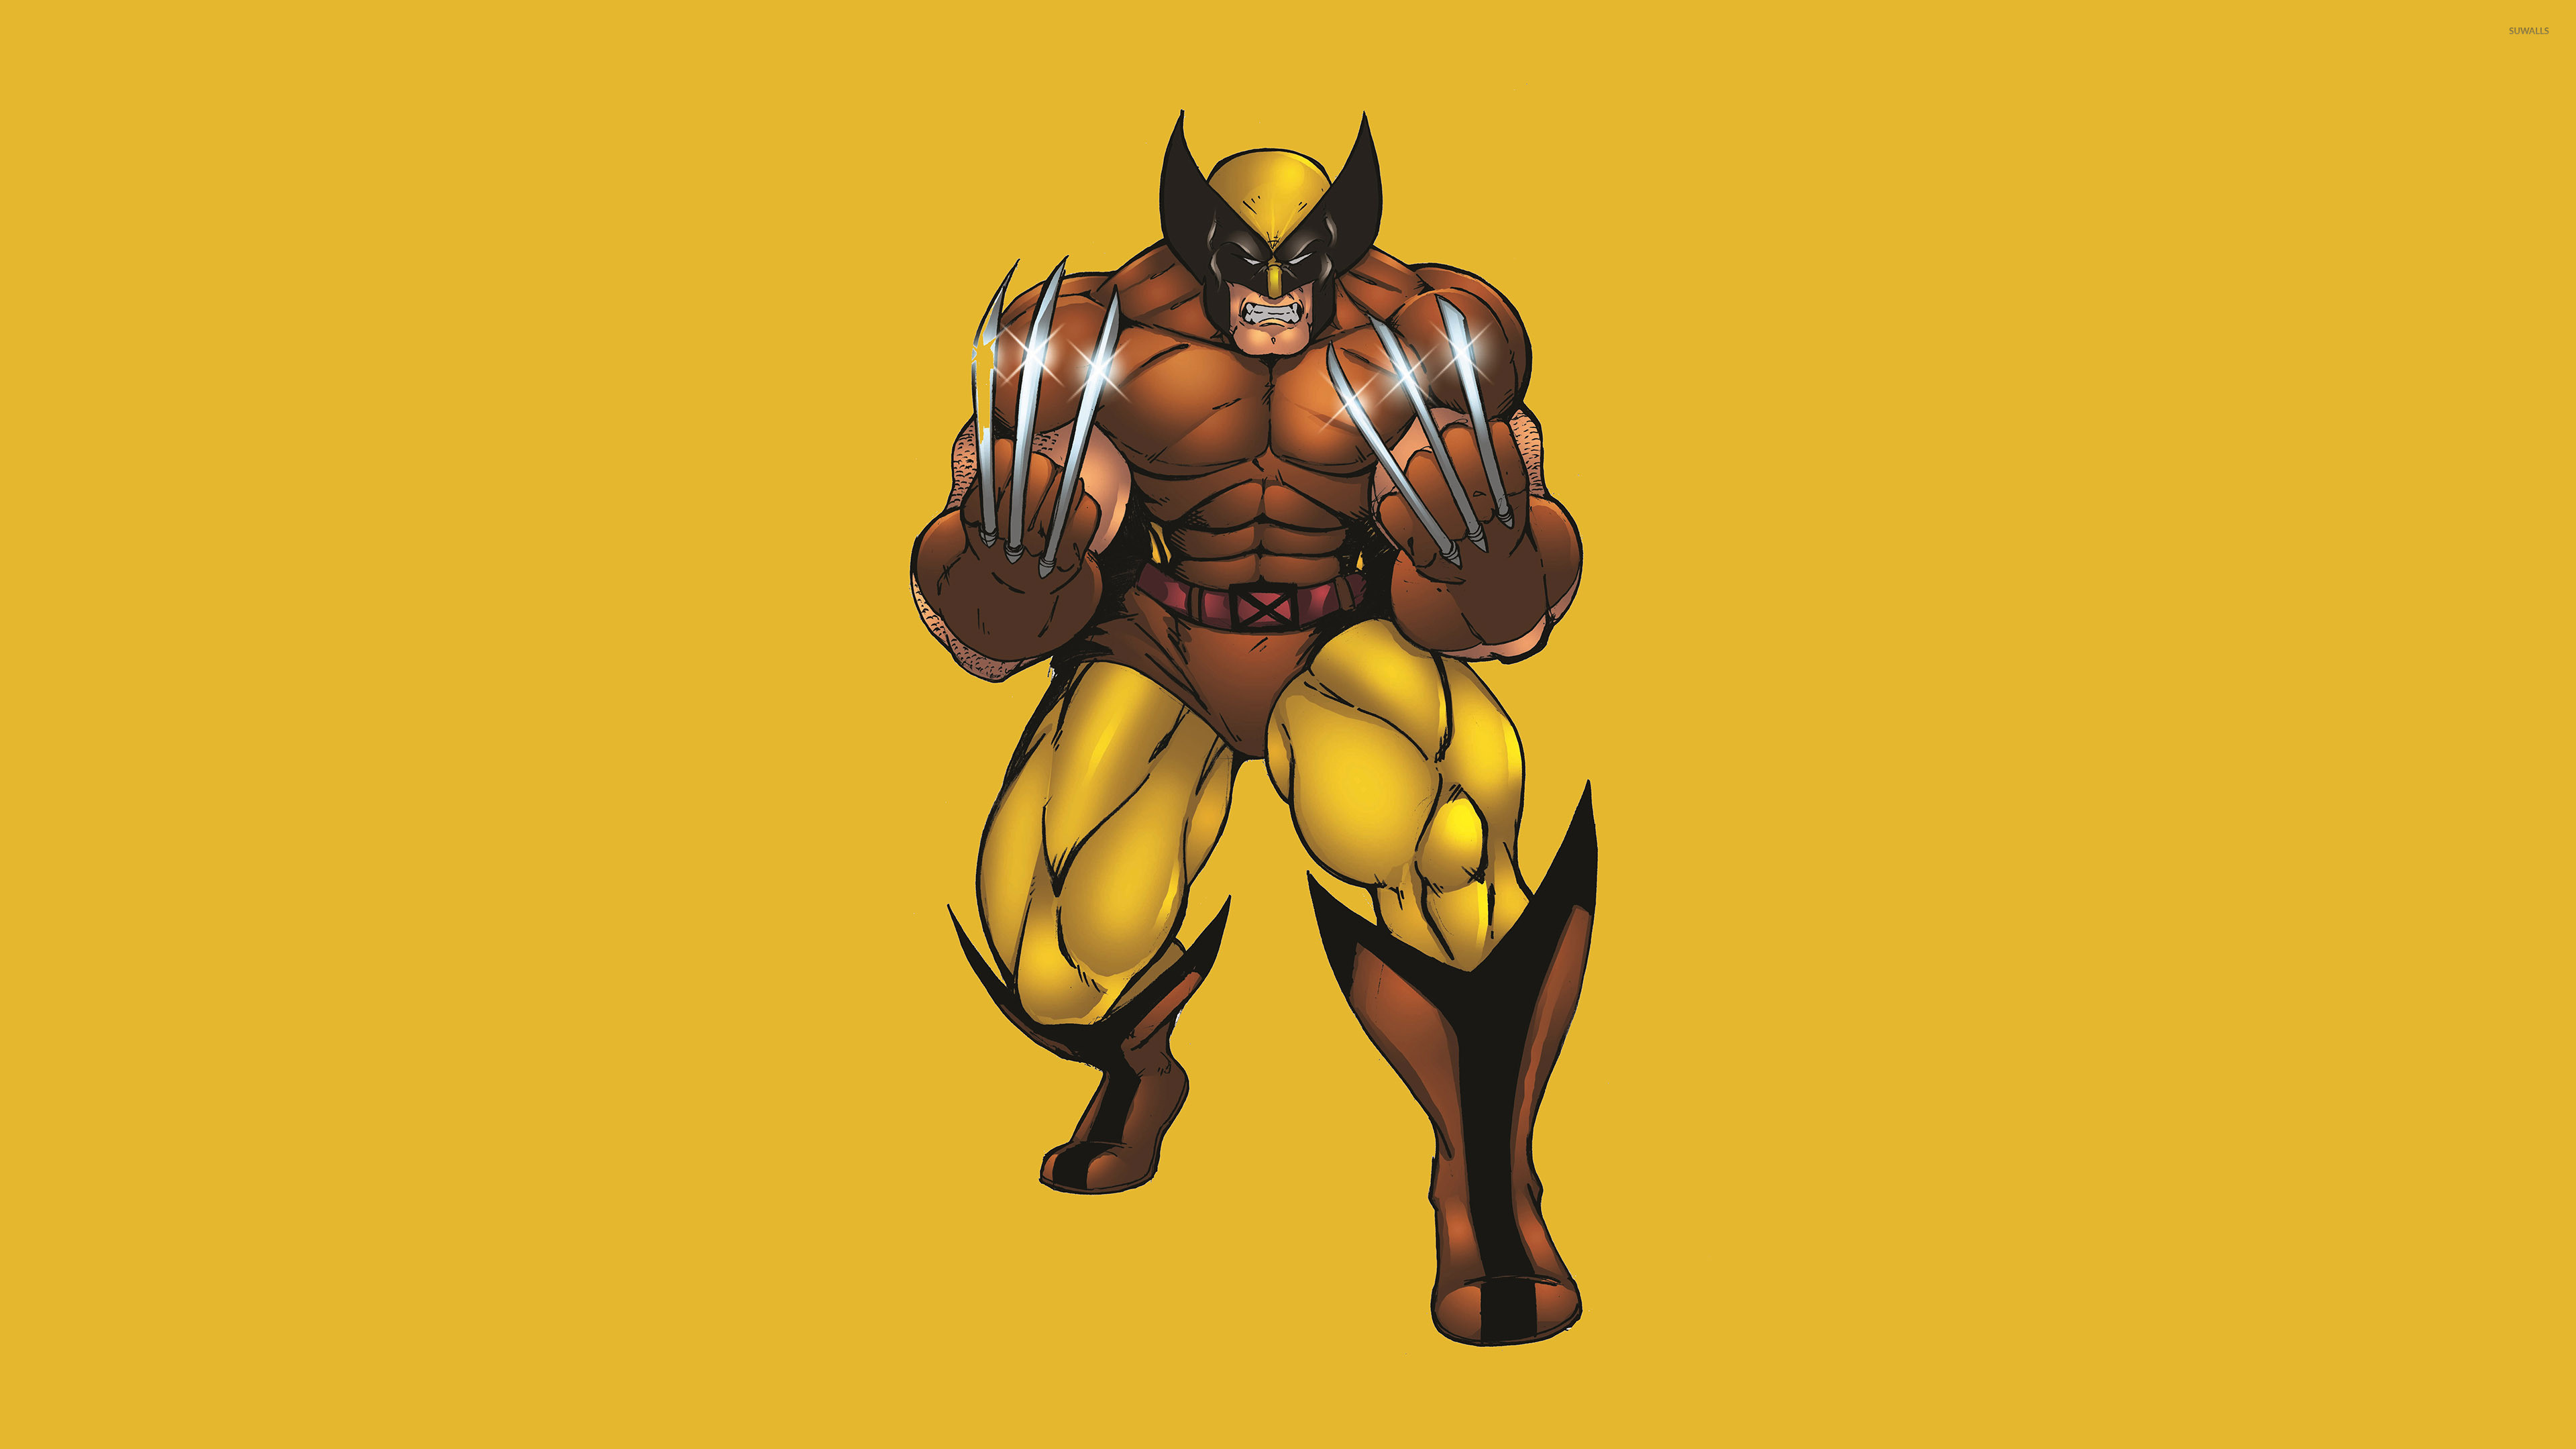 3840x2160 Wolverine with silver claws wallpaper  jpg